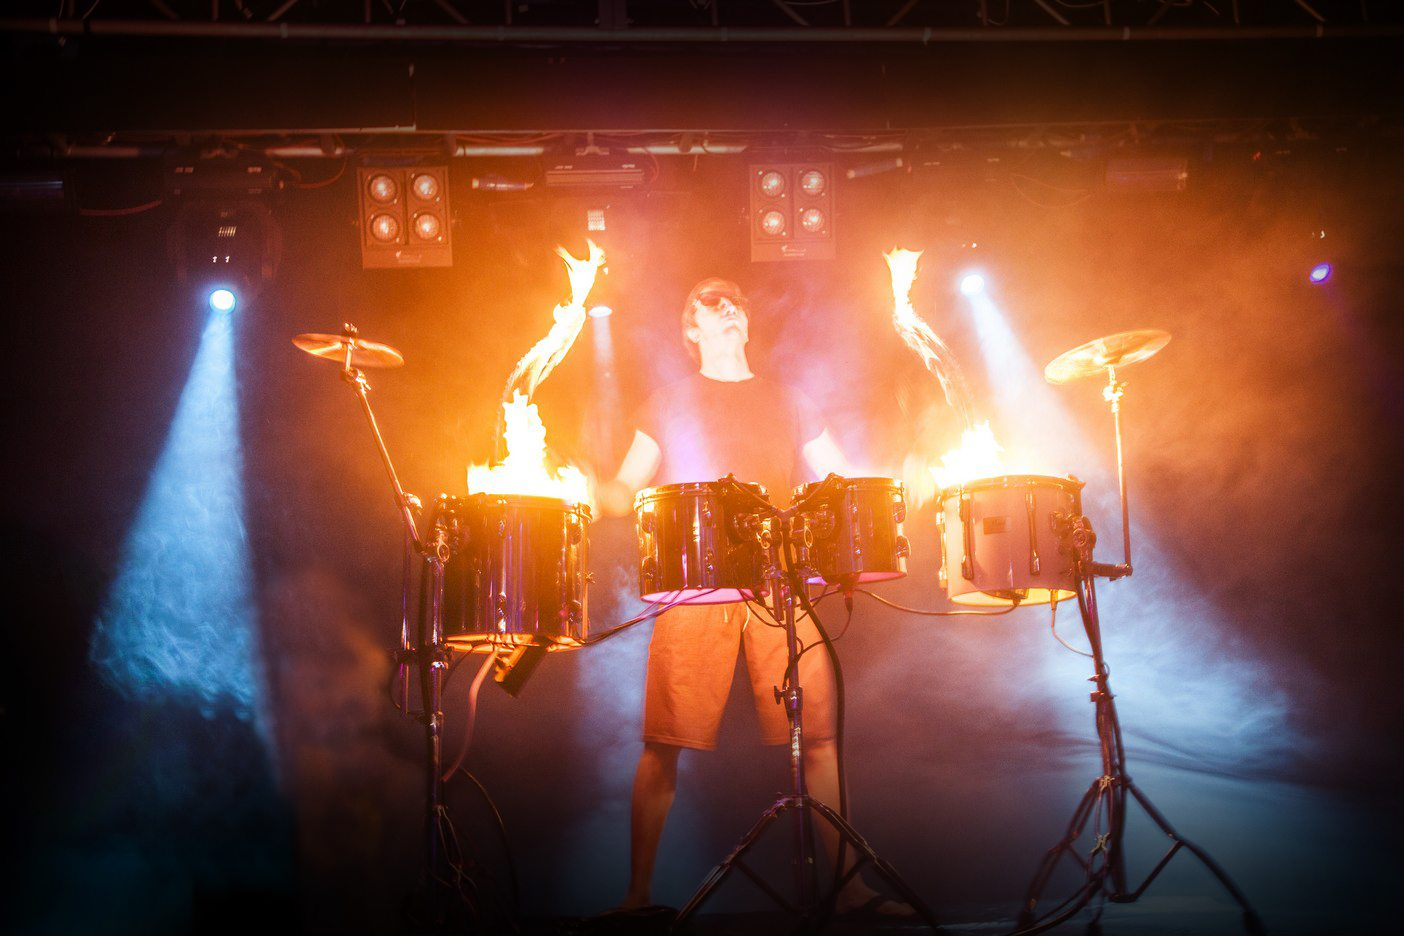 Fire Drums